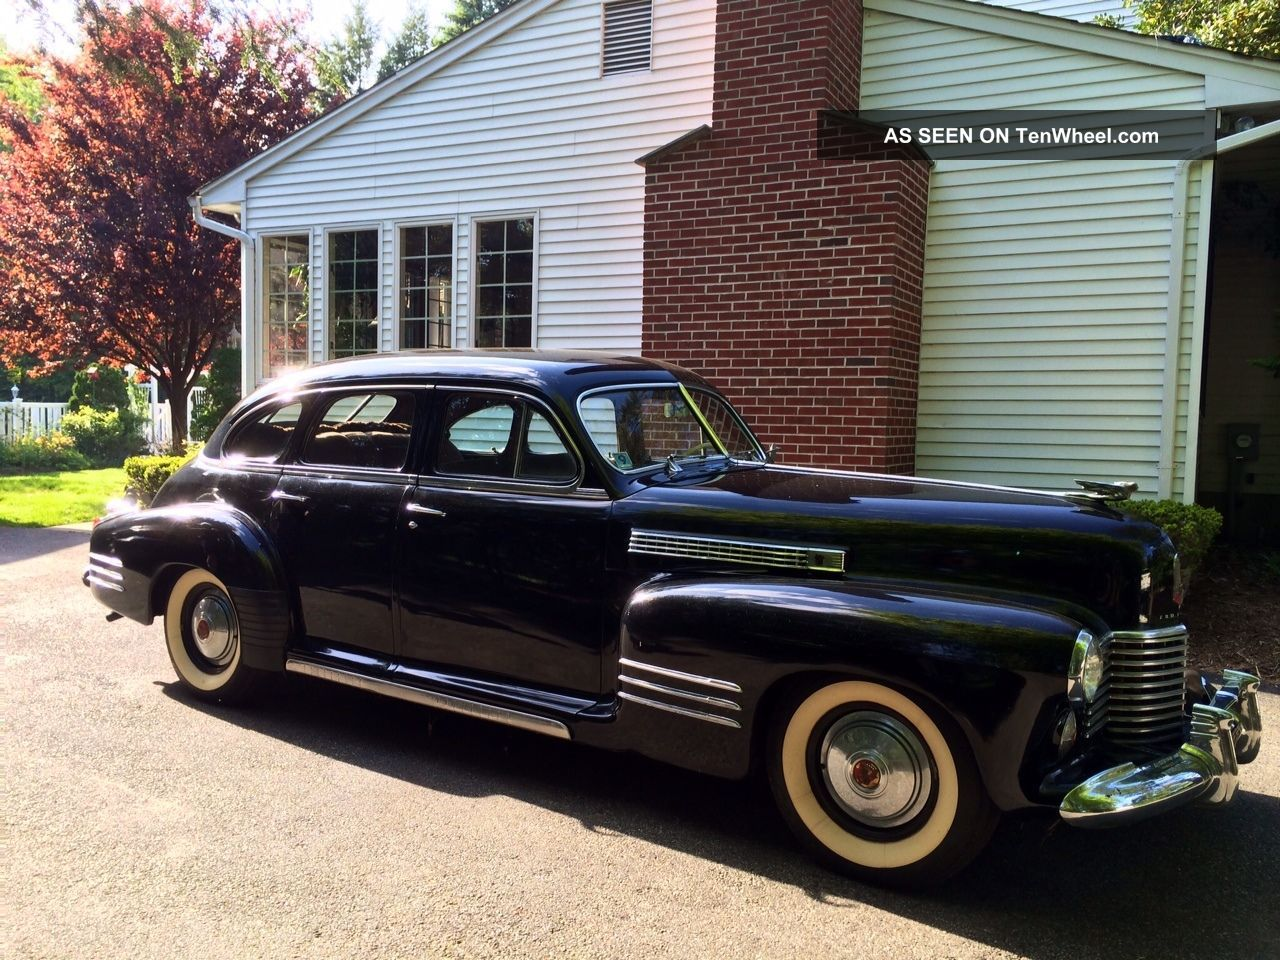 1941 Cadillac Series 63 In Black - First Caddy Automatic,  Car Show Winner Other photo